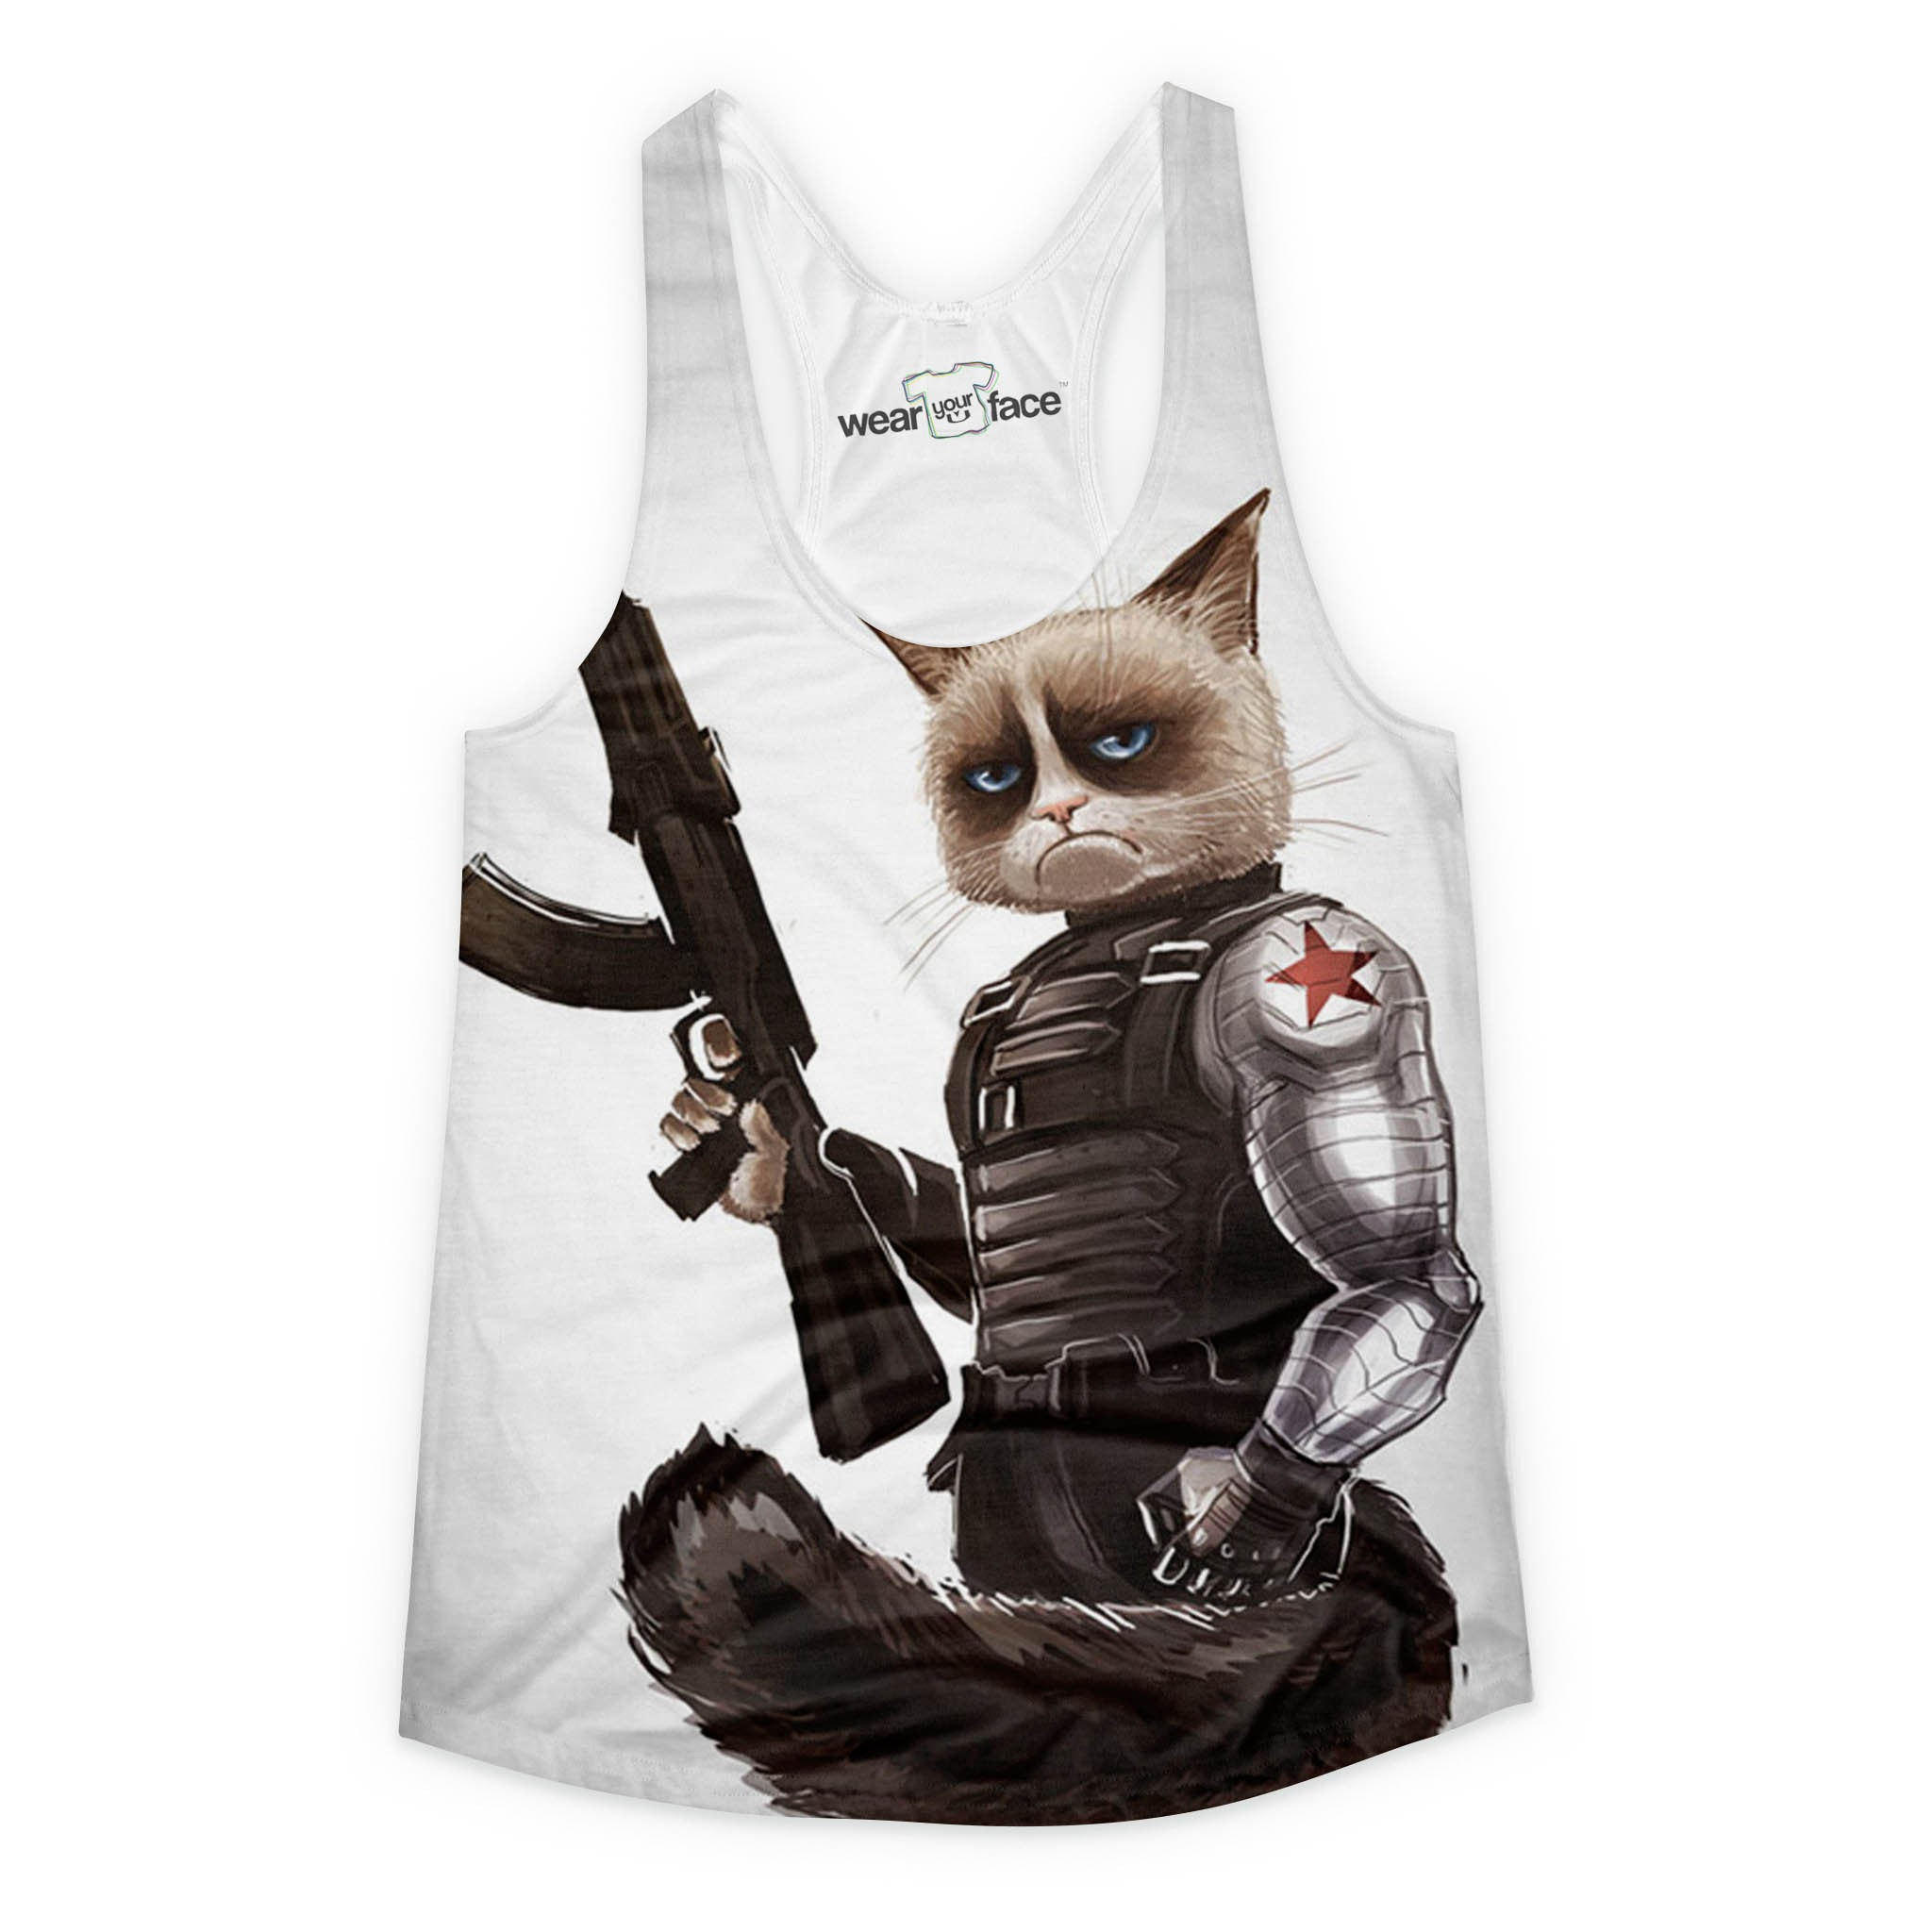 Grumpy Cat Soldier Girls Tank